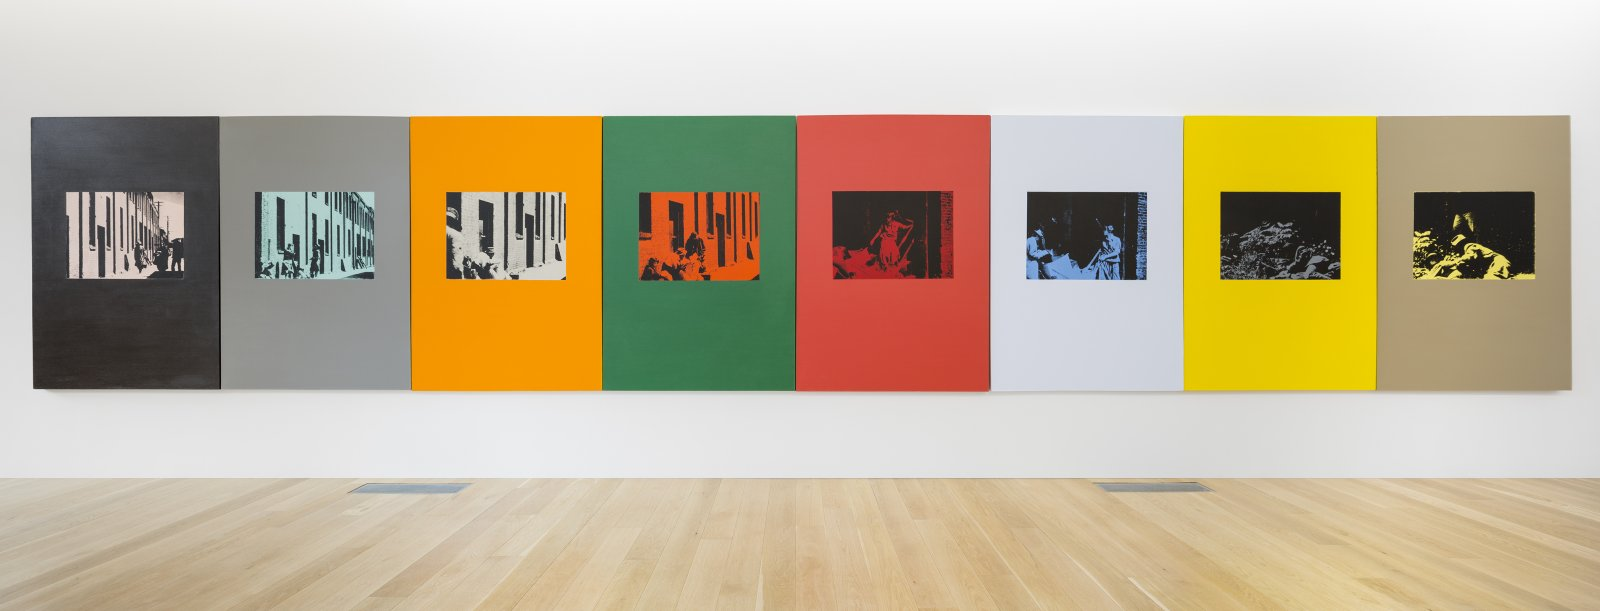 Ian Wallace, Poverty 1982, 1982, oil-based silkscreen over acrylic paint on canvas, 8 panels, 71 x 376 in. (180 x 955 cm). Installation view, Collected Works, The Rennie Museum, Vancouver, 2017